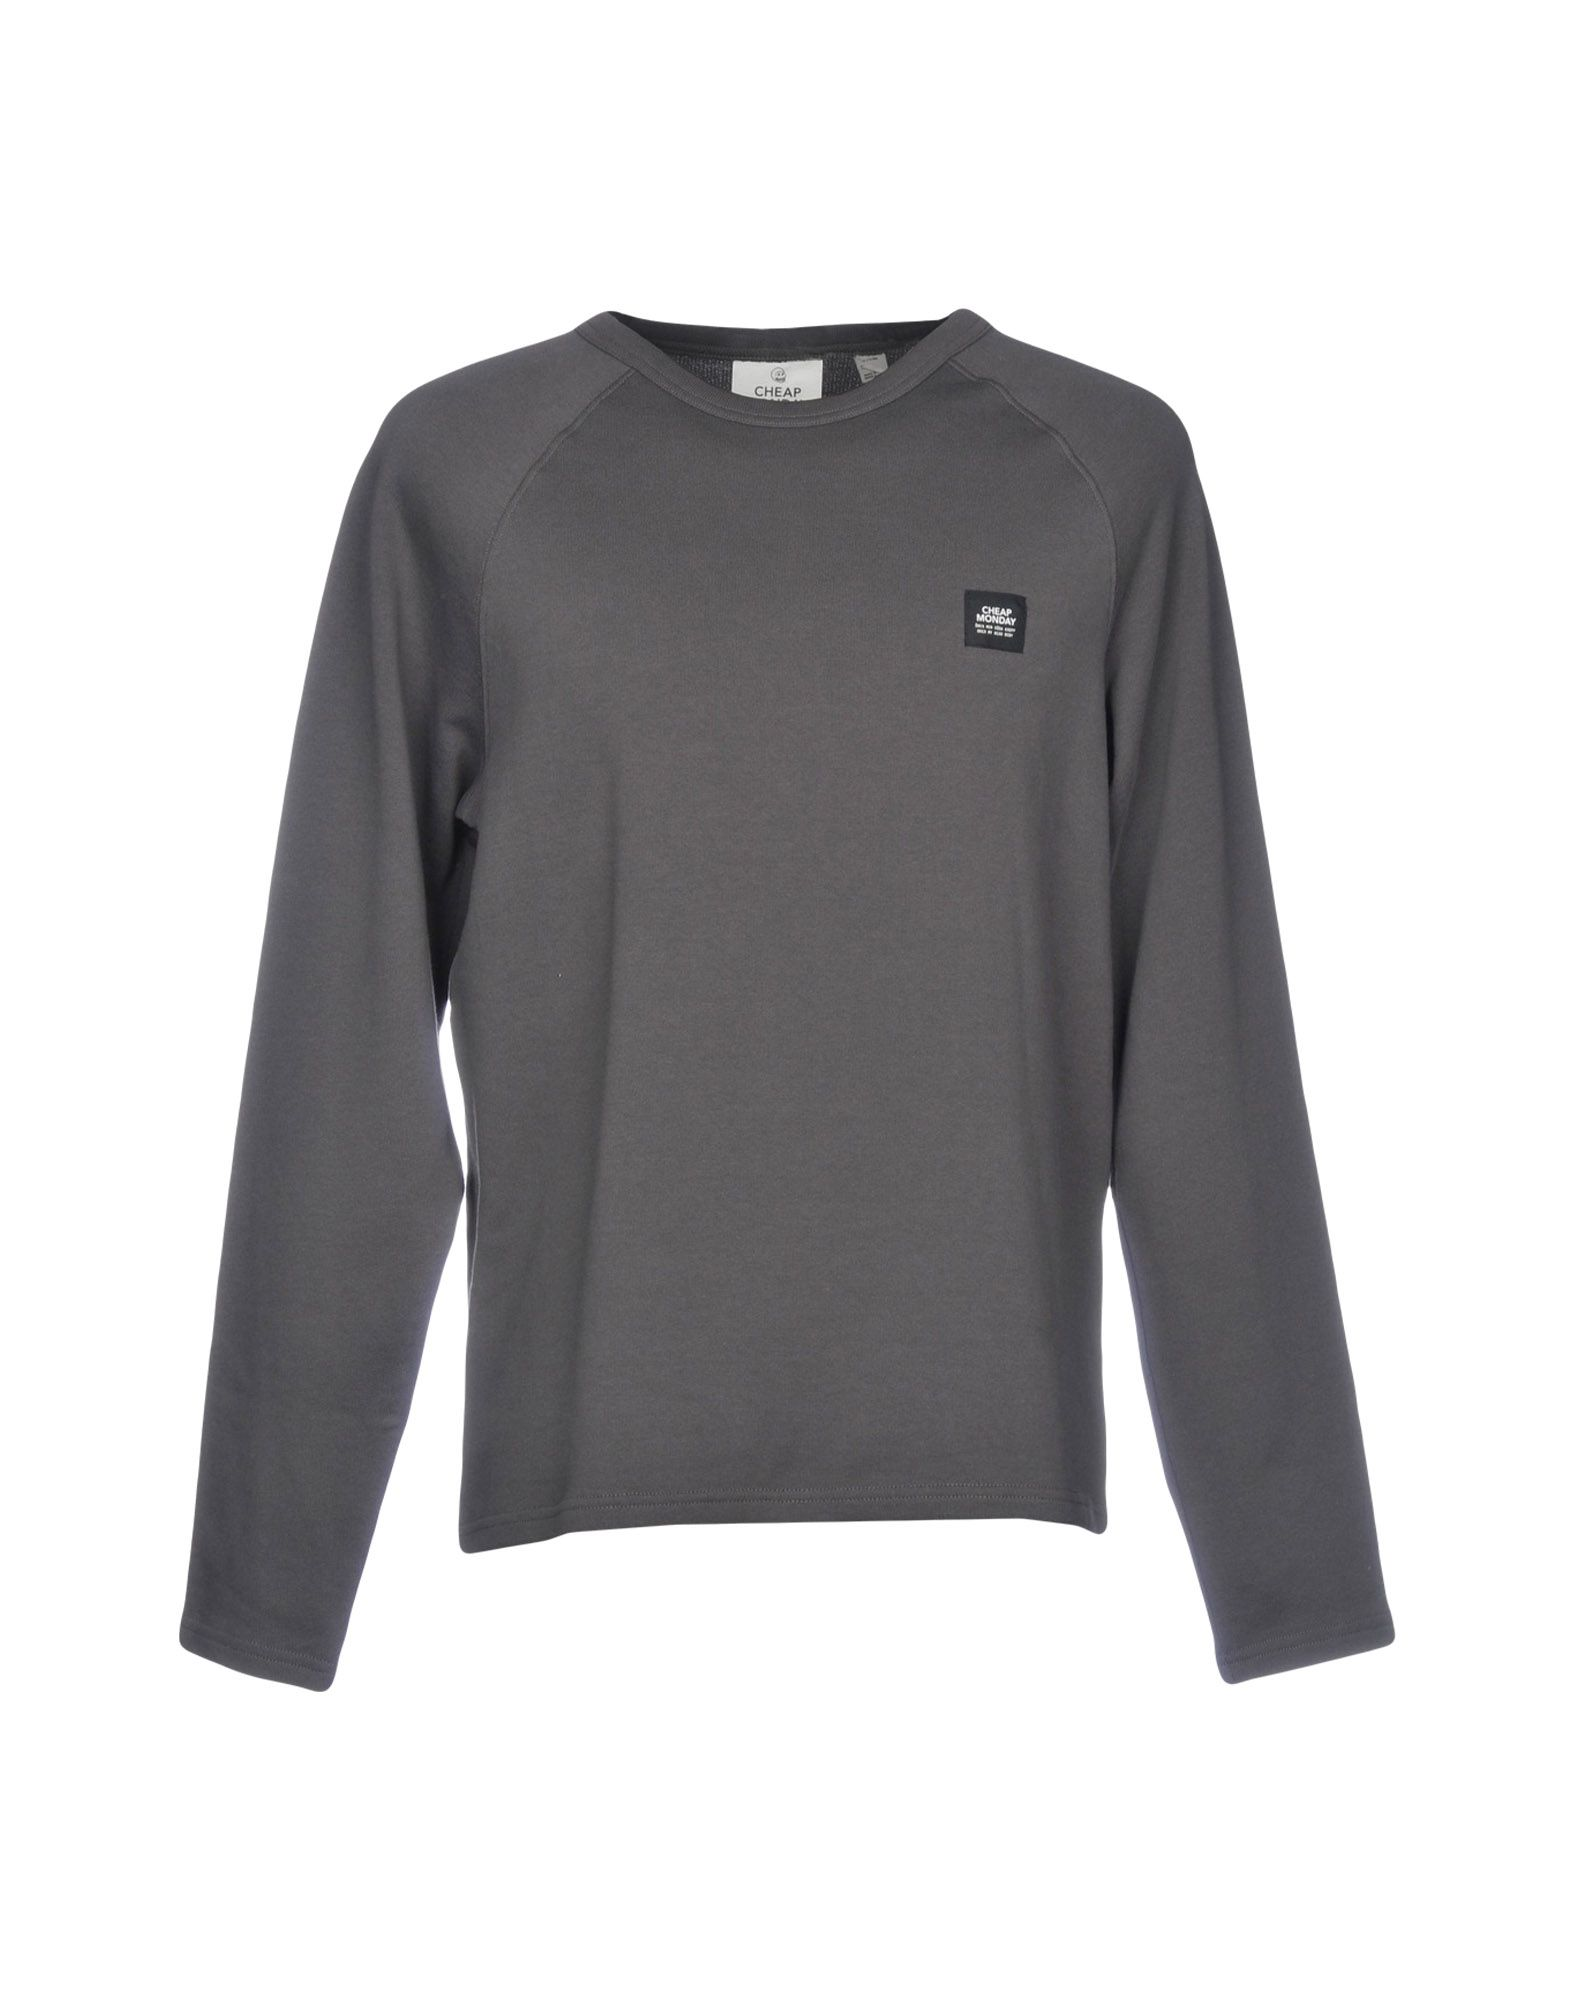 CHEAP MONDAY Sweatshirt in Steel Grey